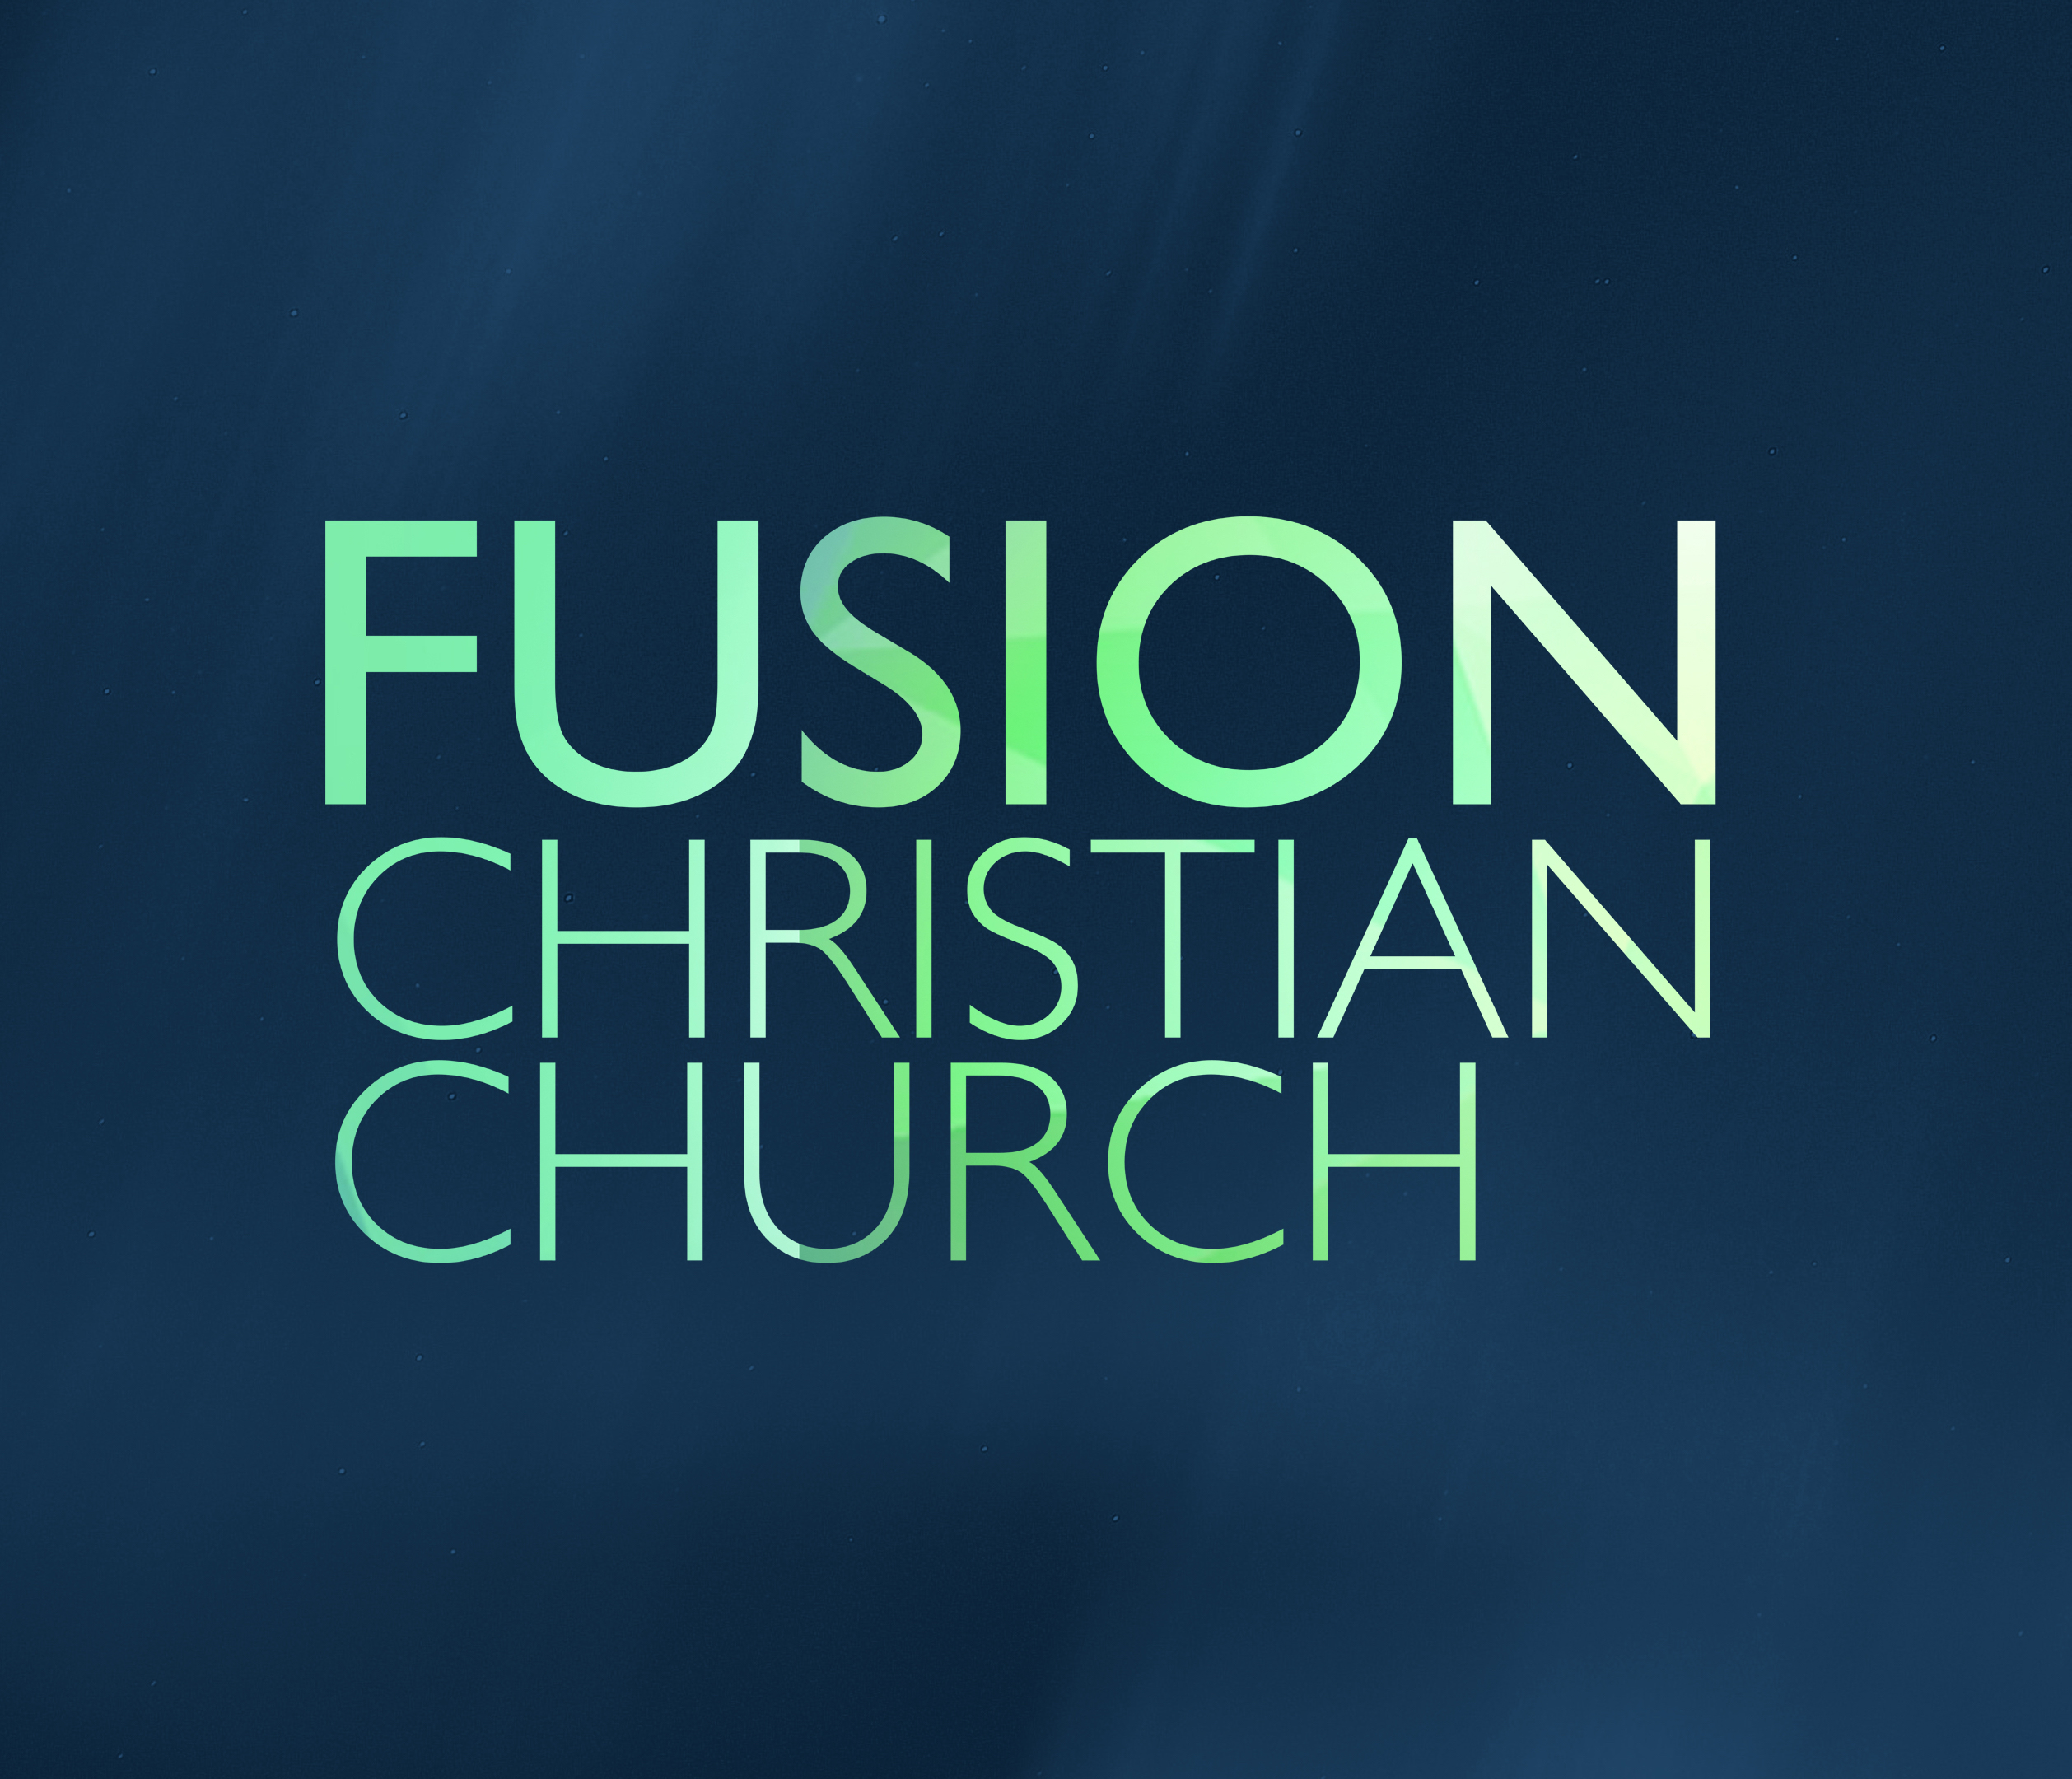 Fusion Christian Church